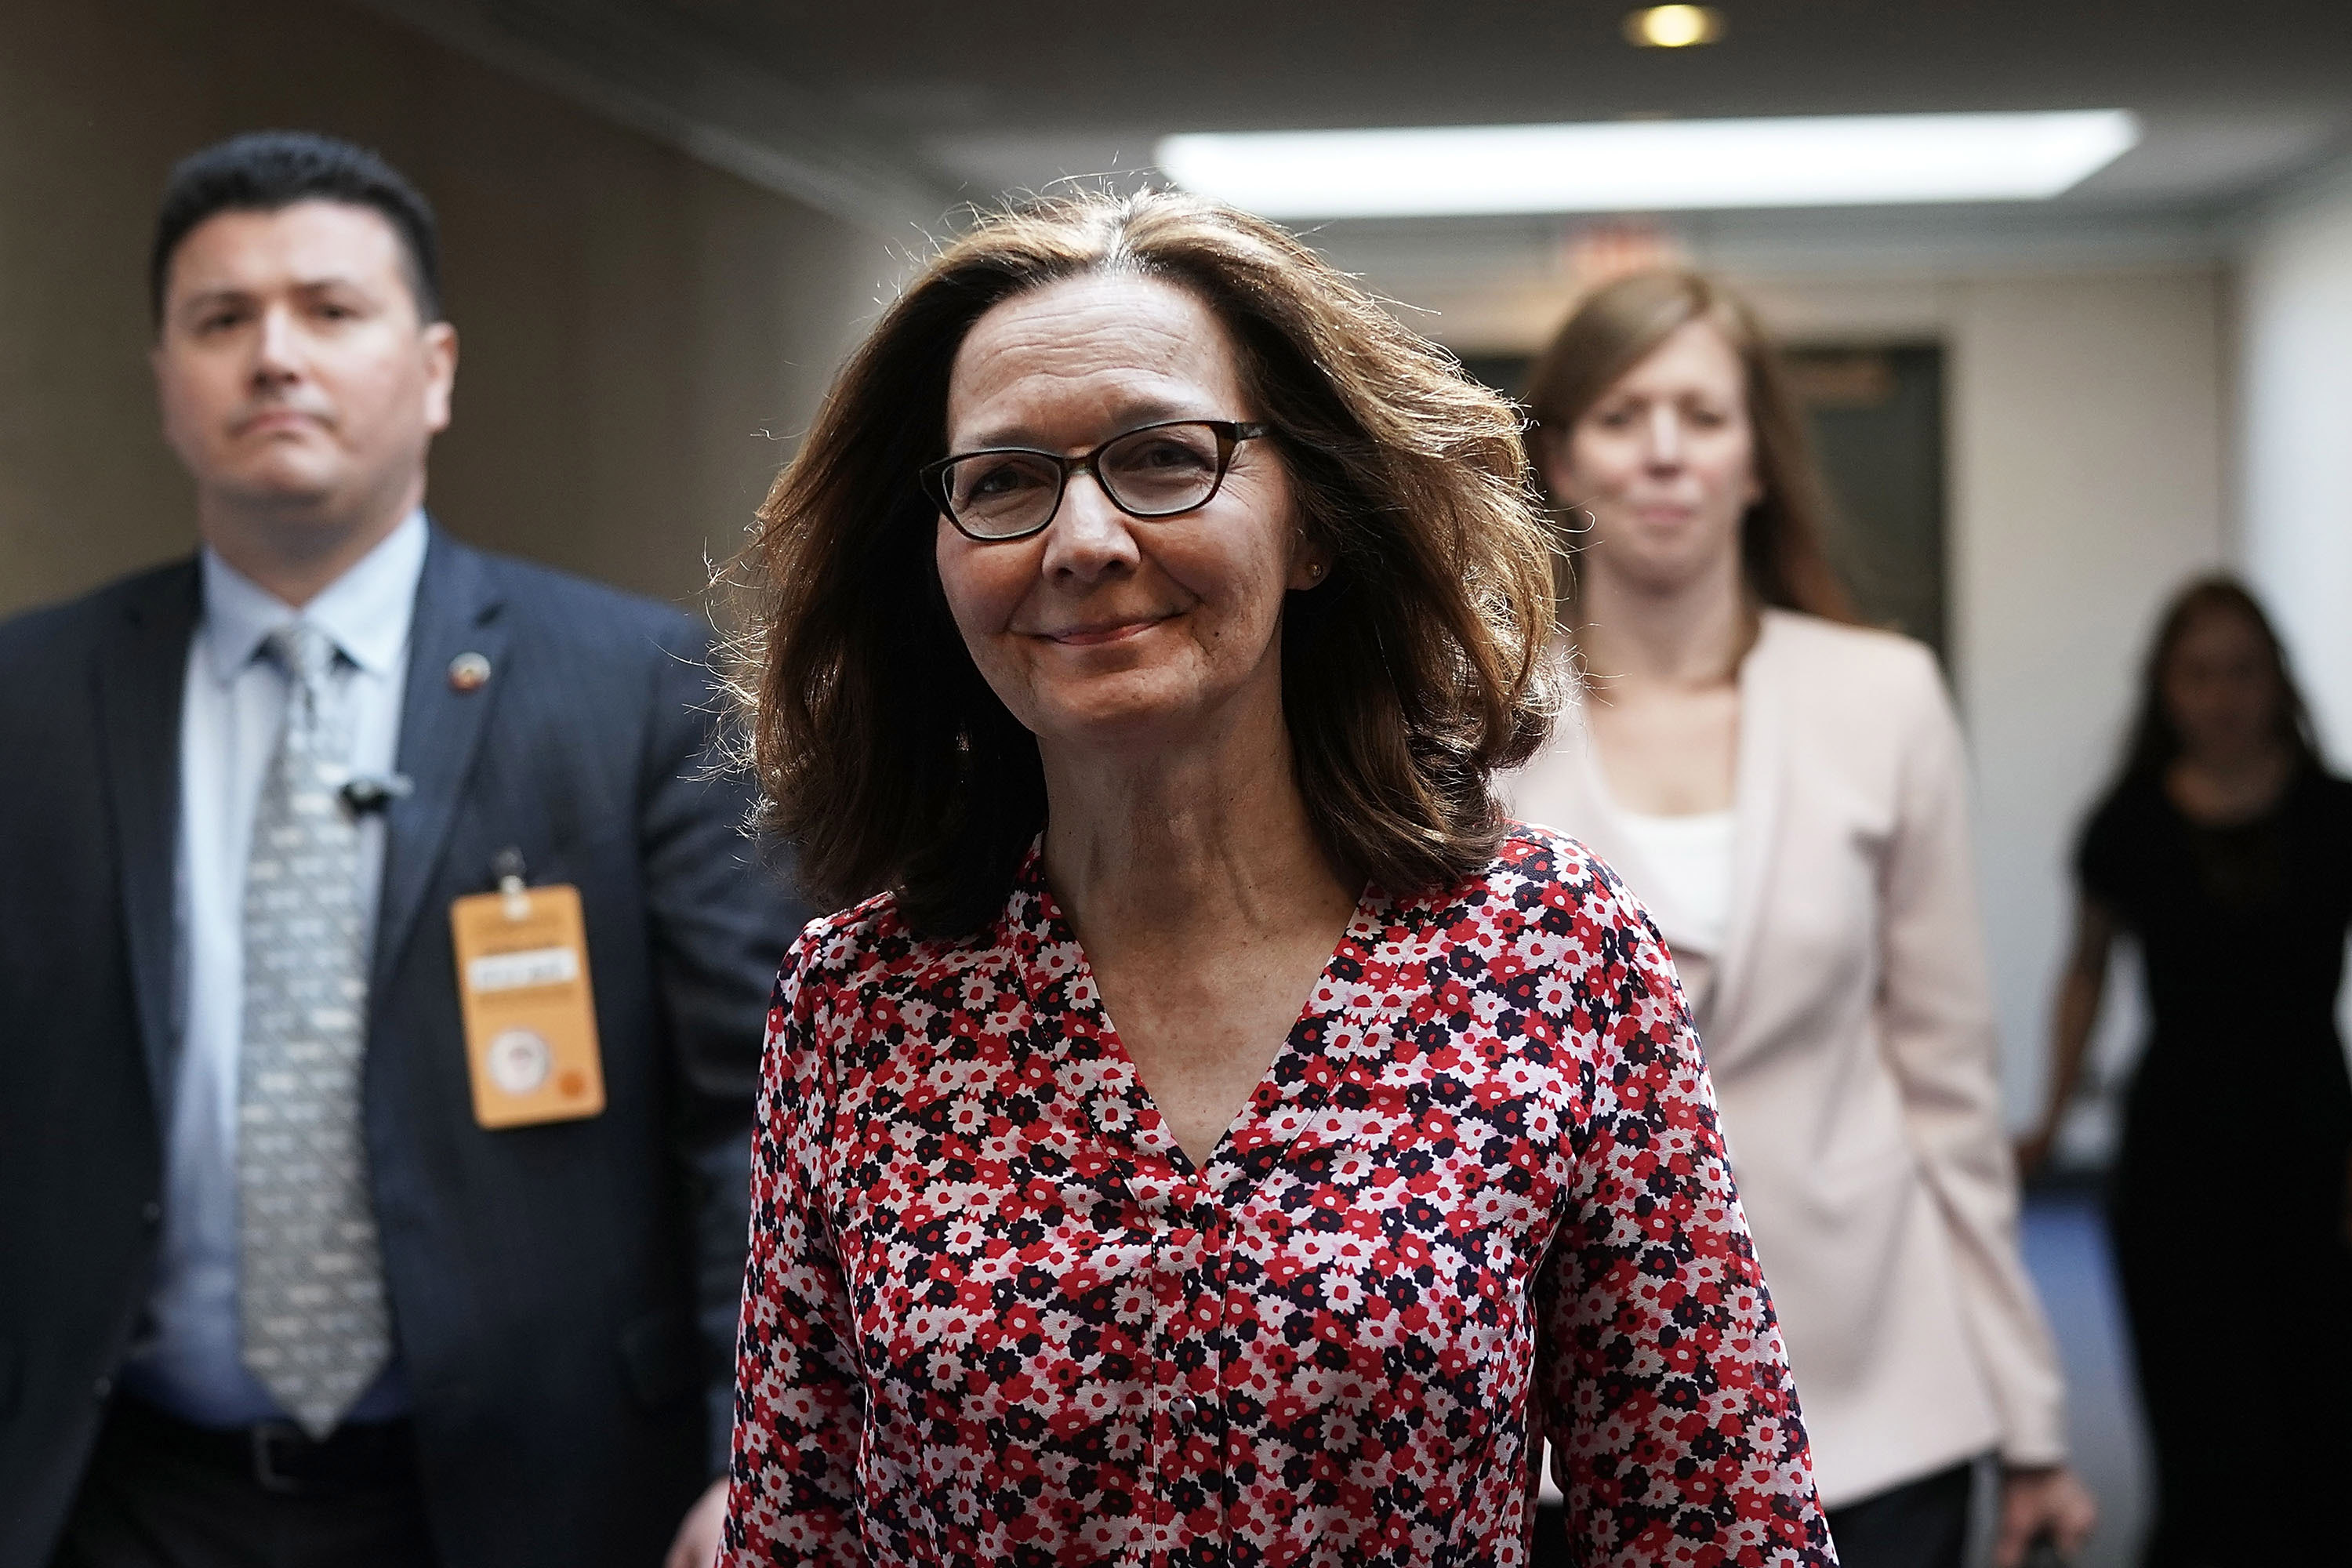 Gina Haspel, nominee to be director of the CIA, visits the Hart Senate Office Building for meetings with senators May 7, 2018 on Capitol Hill in Washington, D.C.